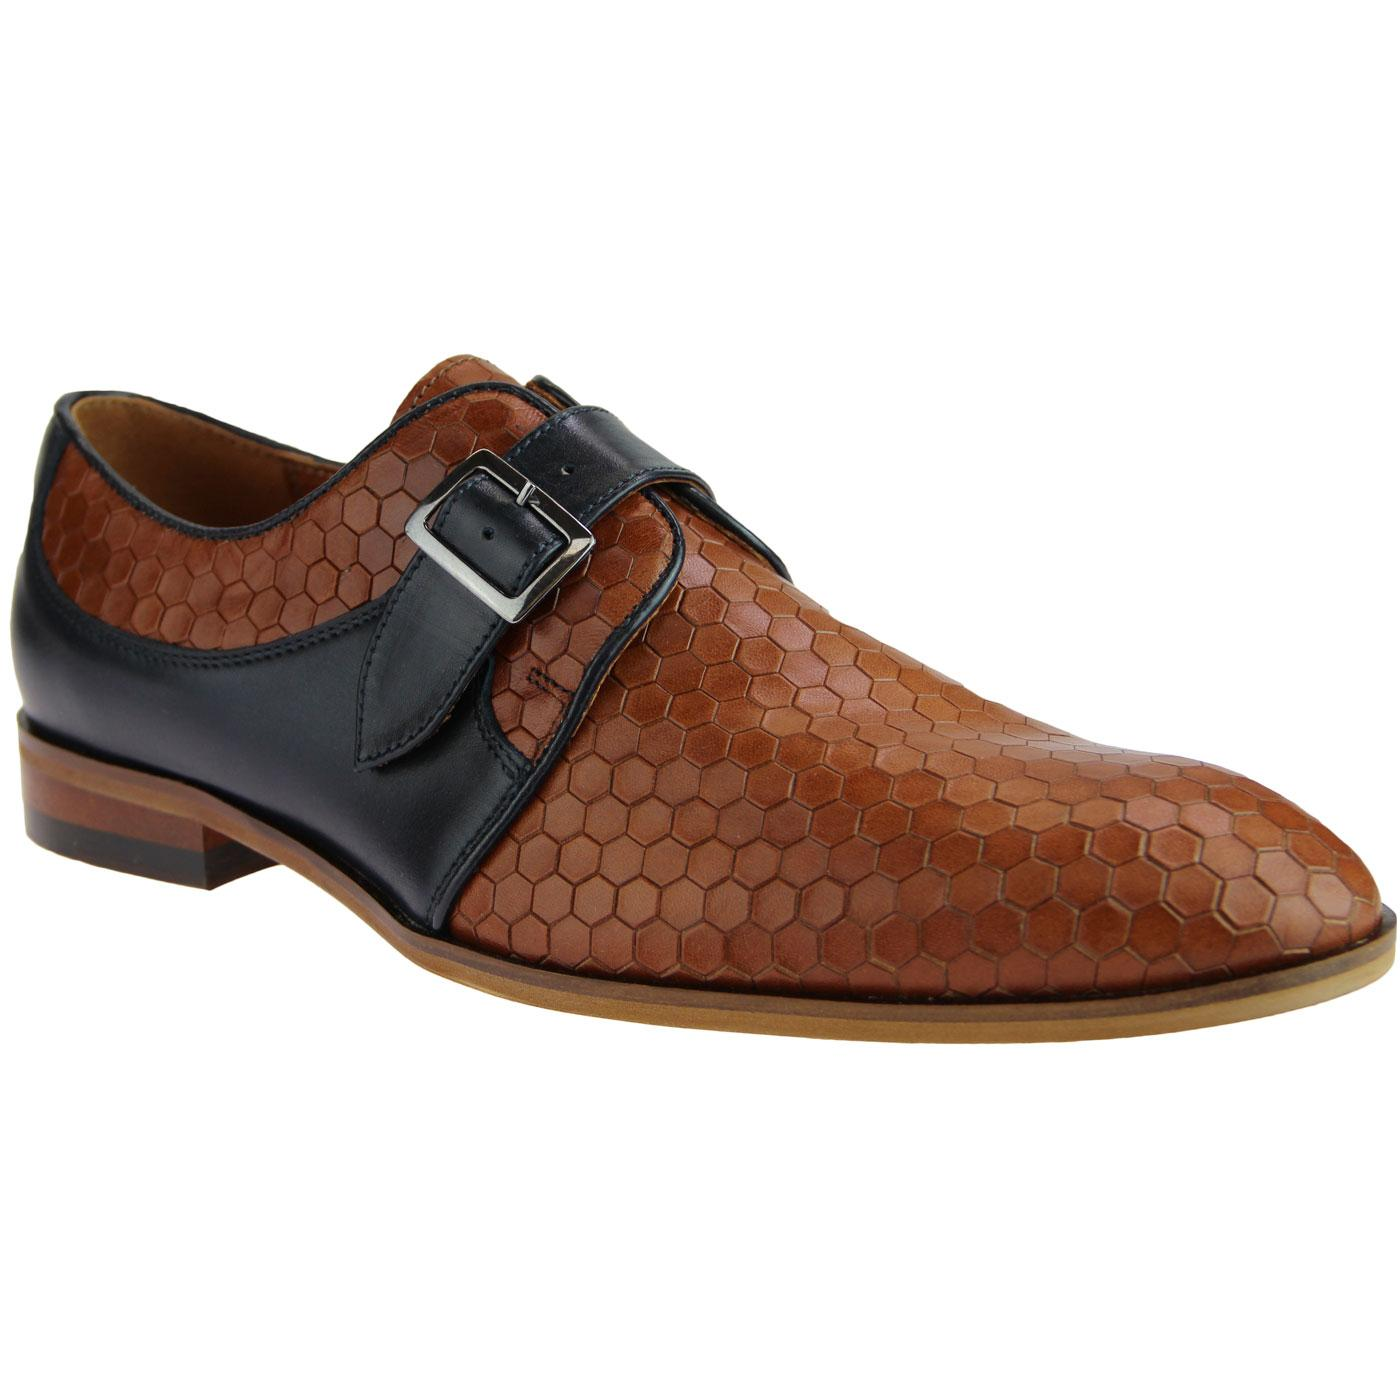 Lane LACUZZO Mod Honeycomb Leather Loafers (Tan)